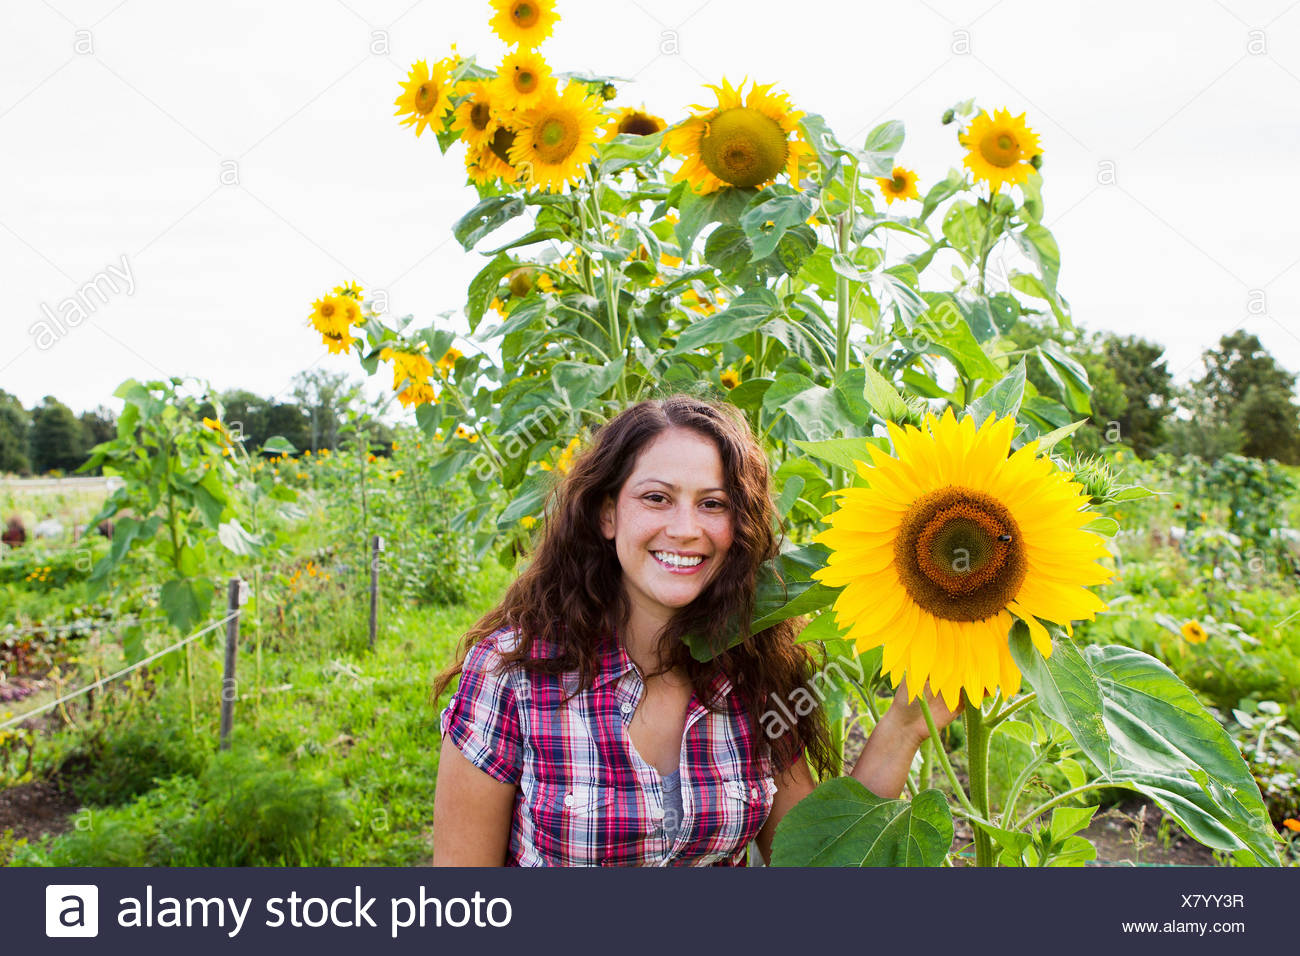 Portrait of young woman with yellow sunflowers in allotment - Stock Image